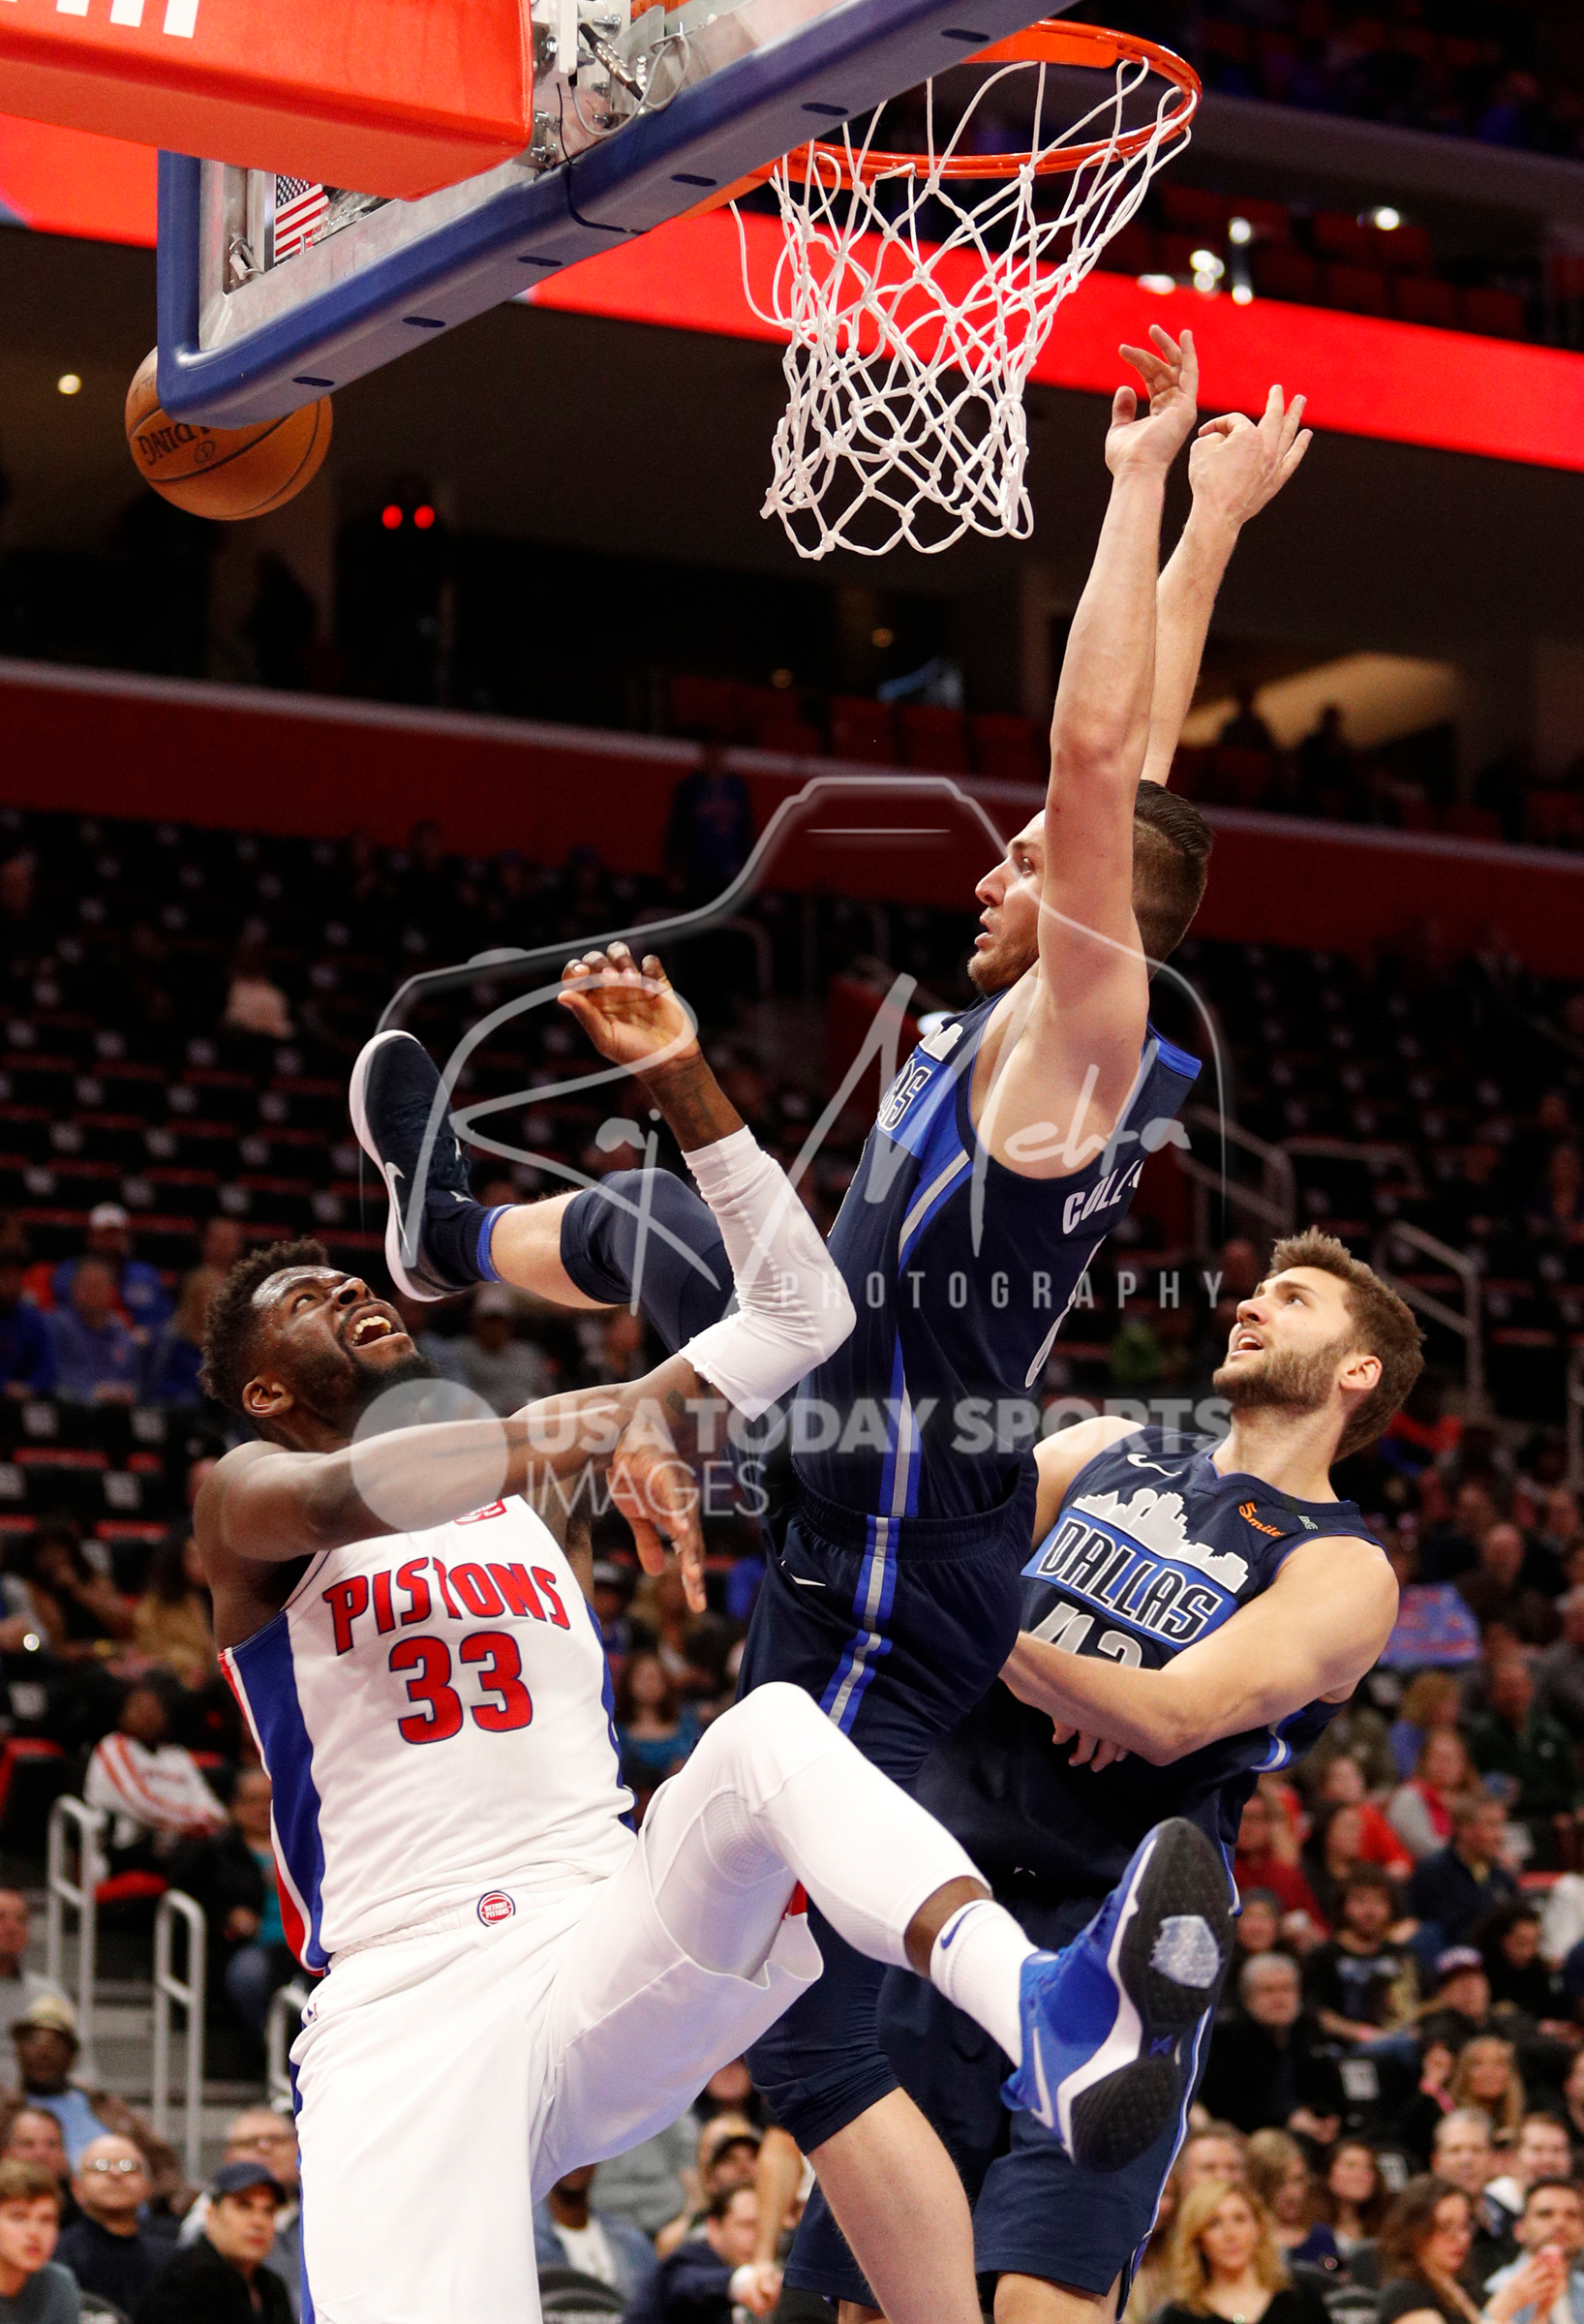 Apr 6, 2018; Detroit, MI, USA; Dallas Mavericks guard Kyle Collinsworth (8) collides with Detroit Pistons forward James Ennis III (33) during the fourth quarter at Little Caesars Arena. Mandatory Credit: Raj Mehta-USA TODAY Sports